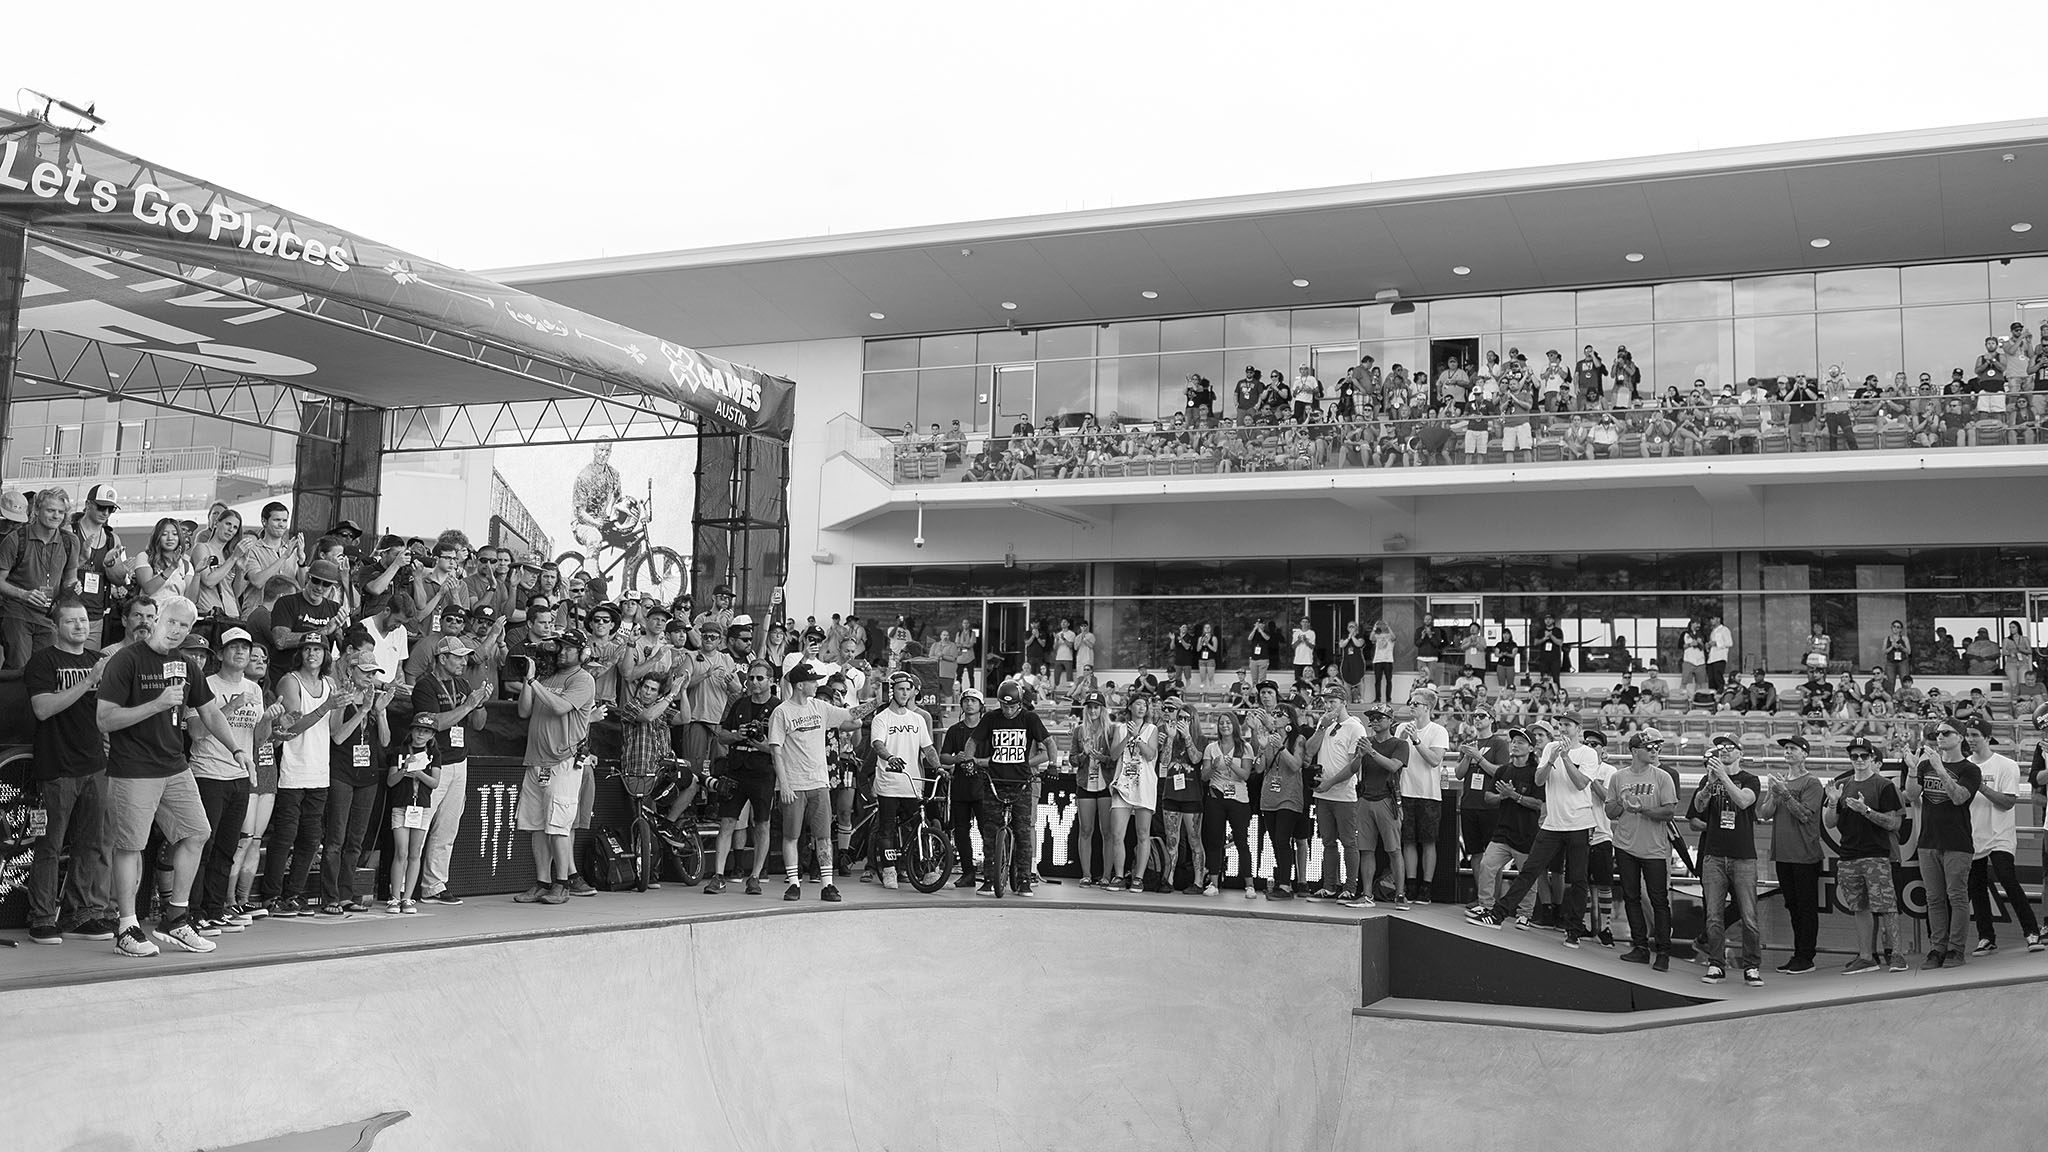 The BMX family joined together after the end of the BMX park final Saturday in Austin to pay tribute to BMX pioneer Dave Mirra.